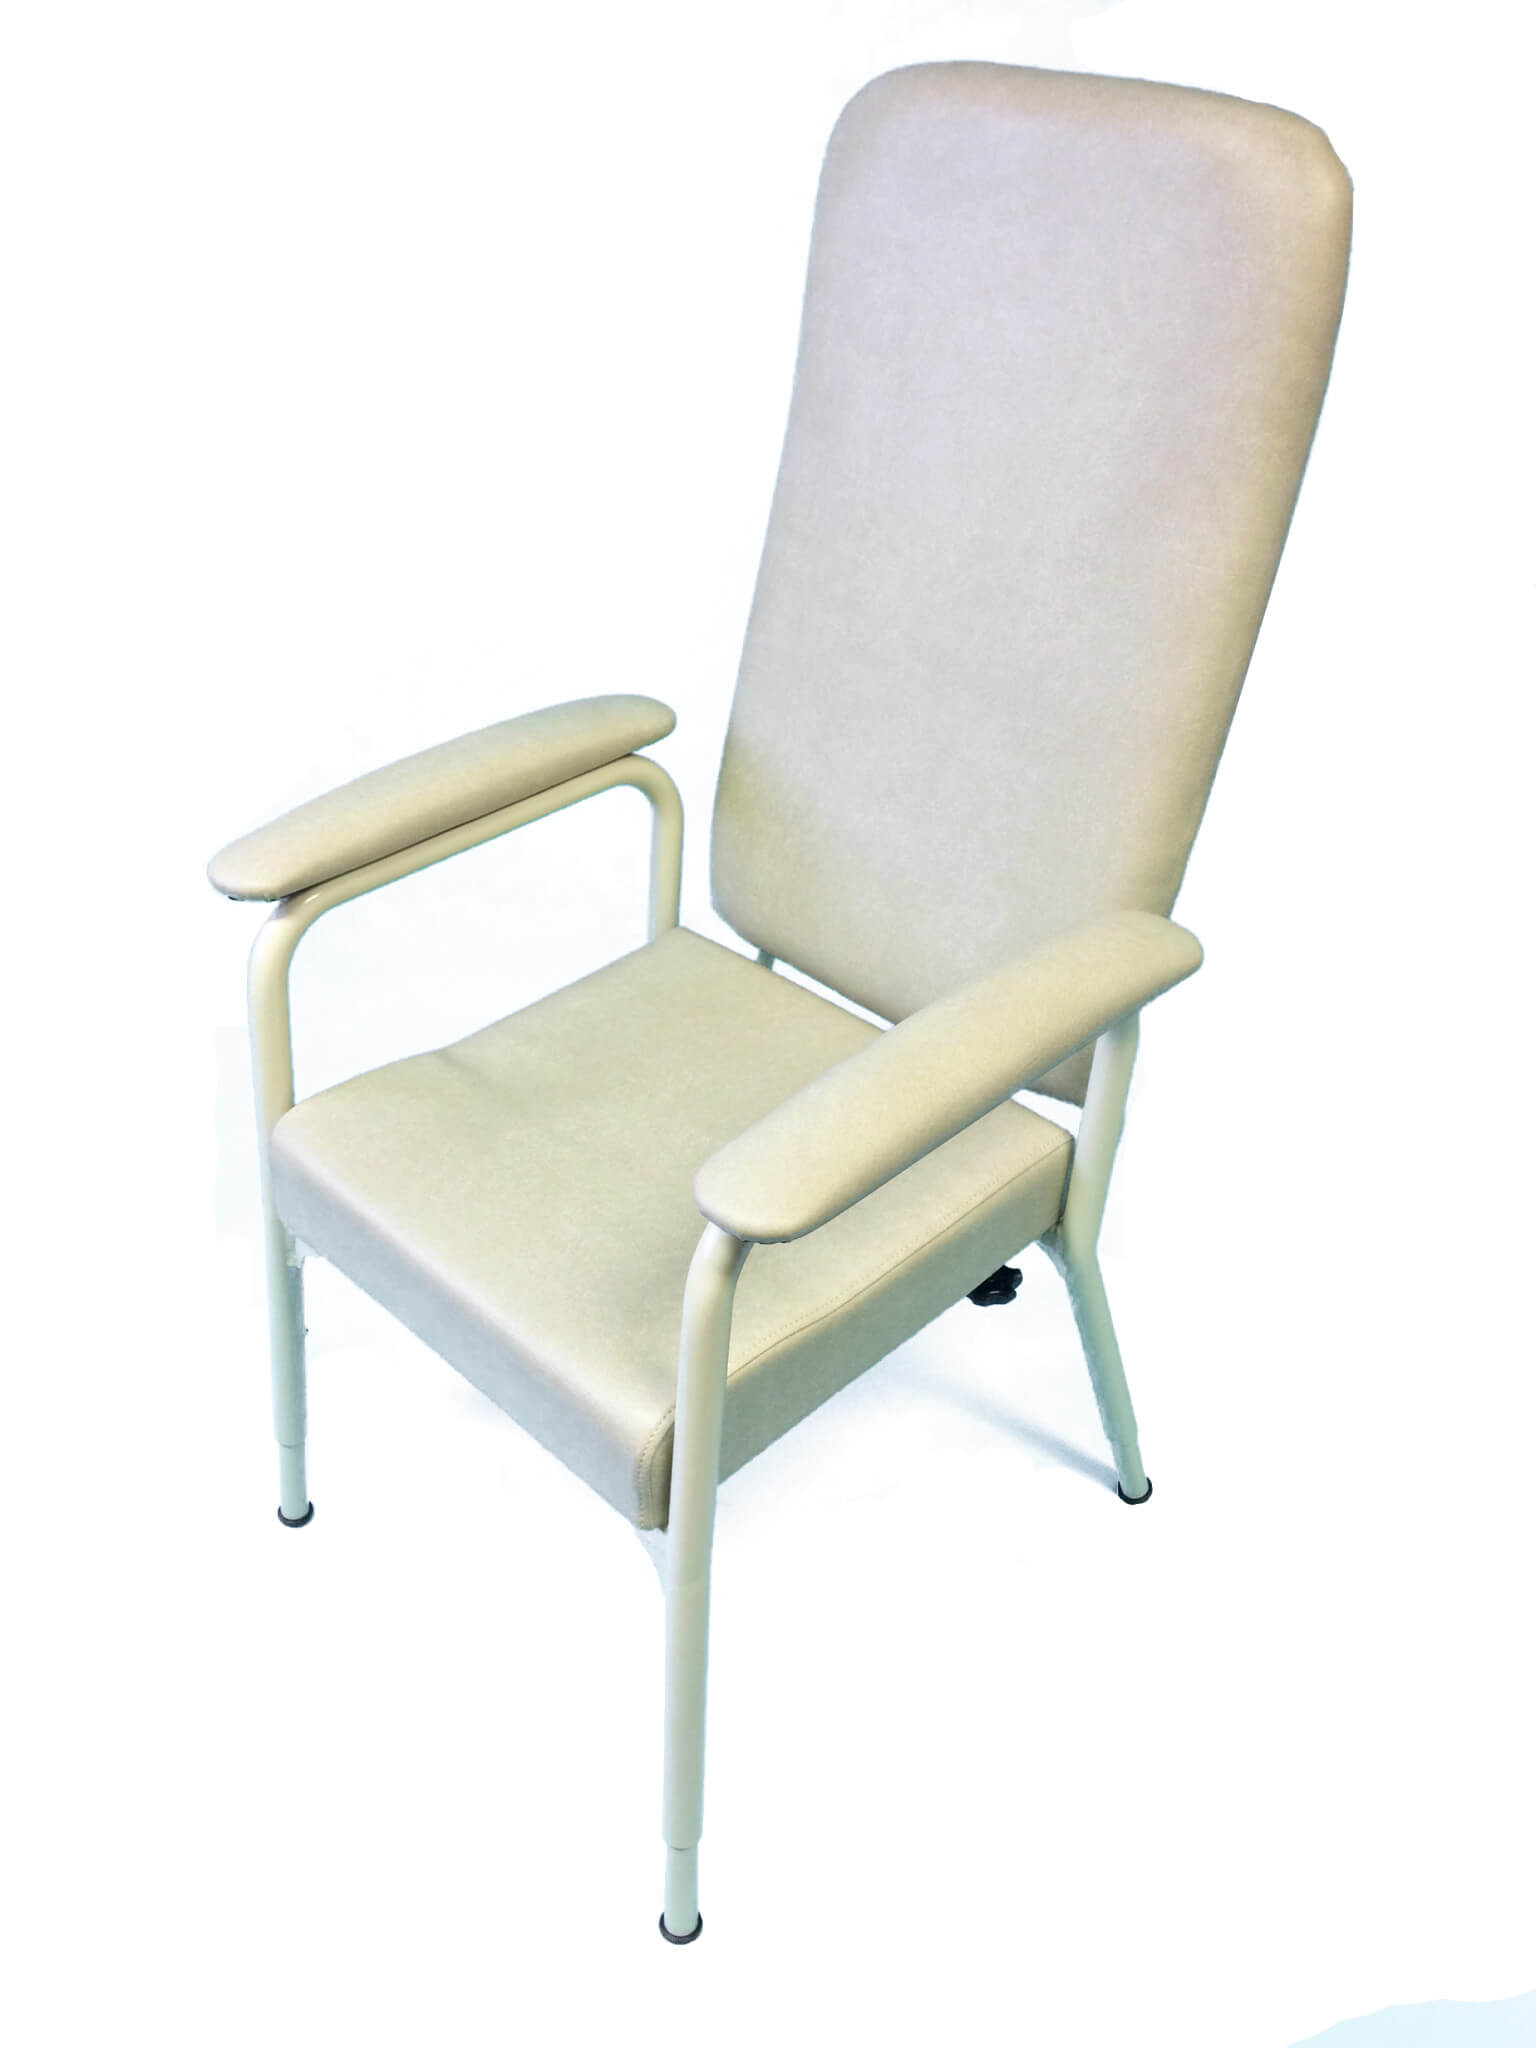 pain product our reviews support chairs back lower what best the with lumbar for s mesh essentials high chair task whats and choice customizable arms ergonomic